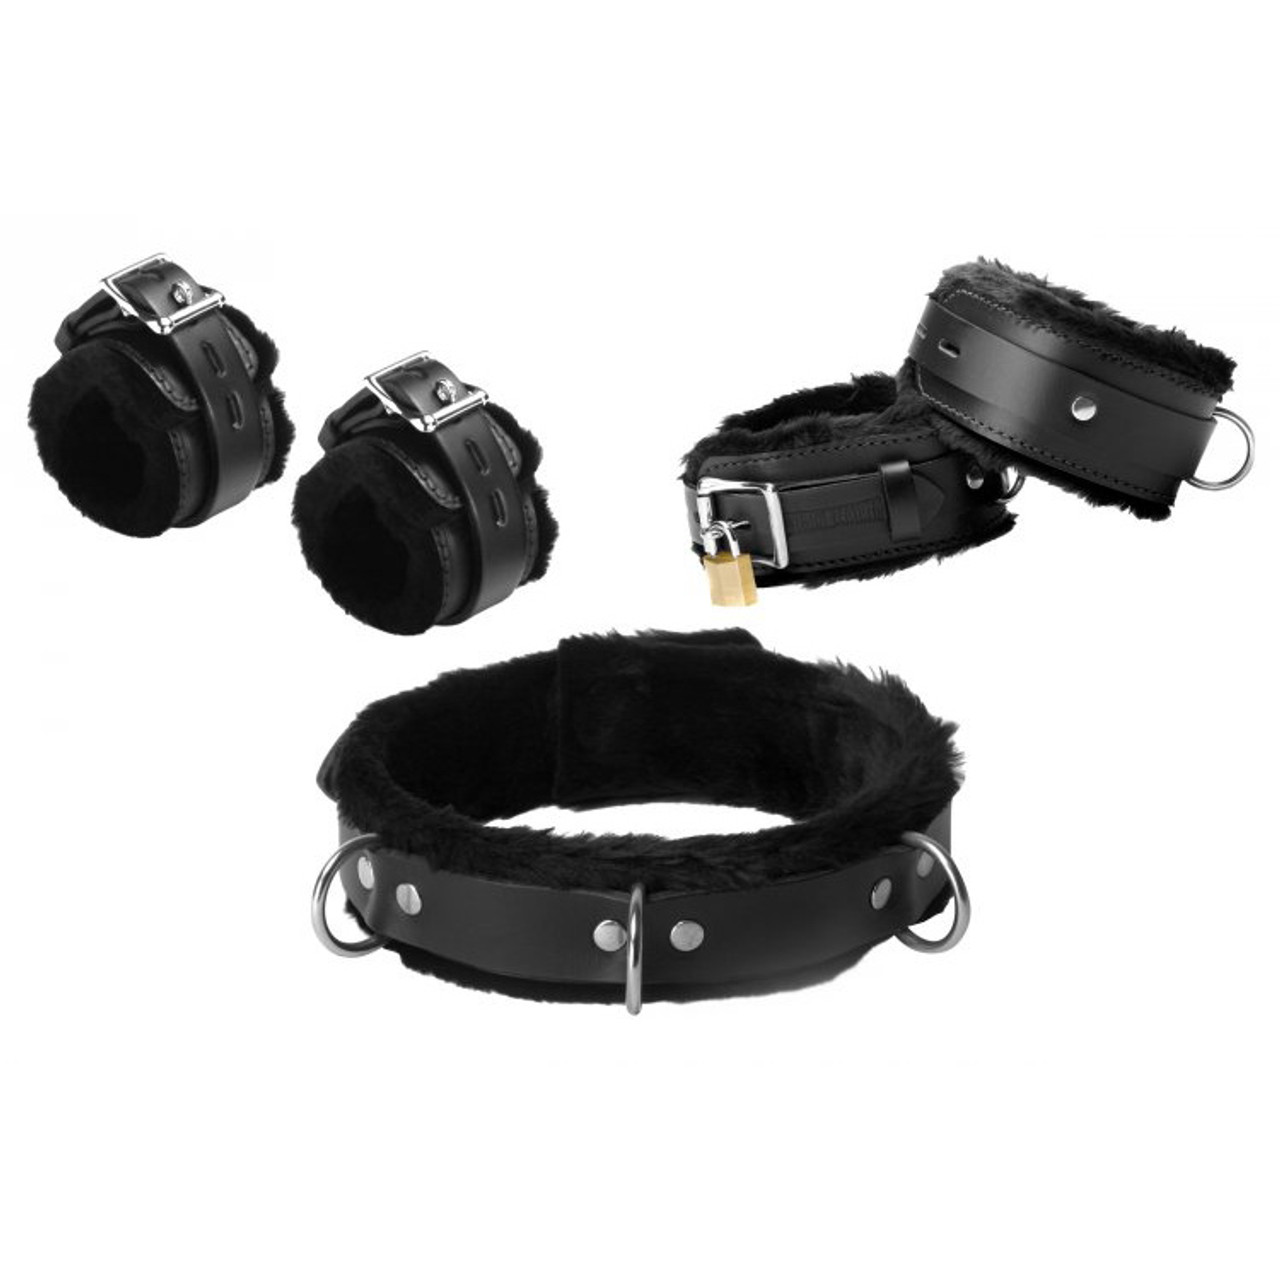 leather bondage bondage kit